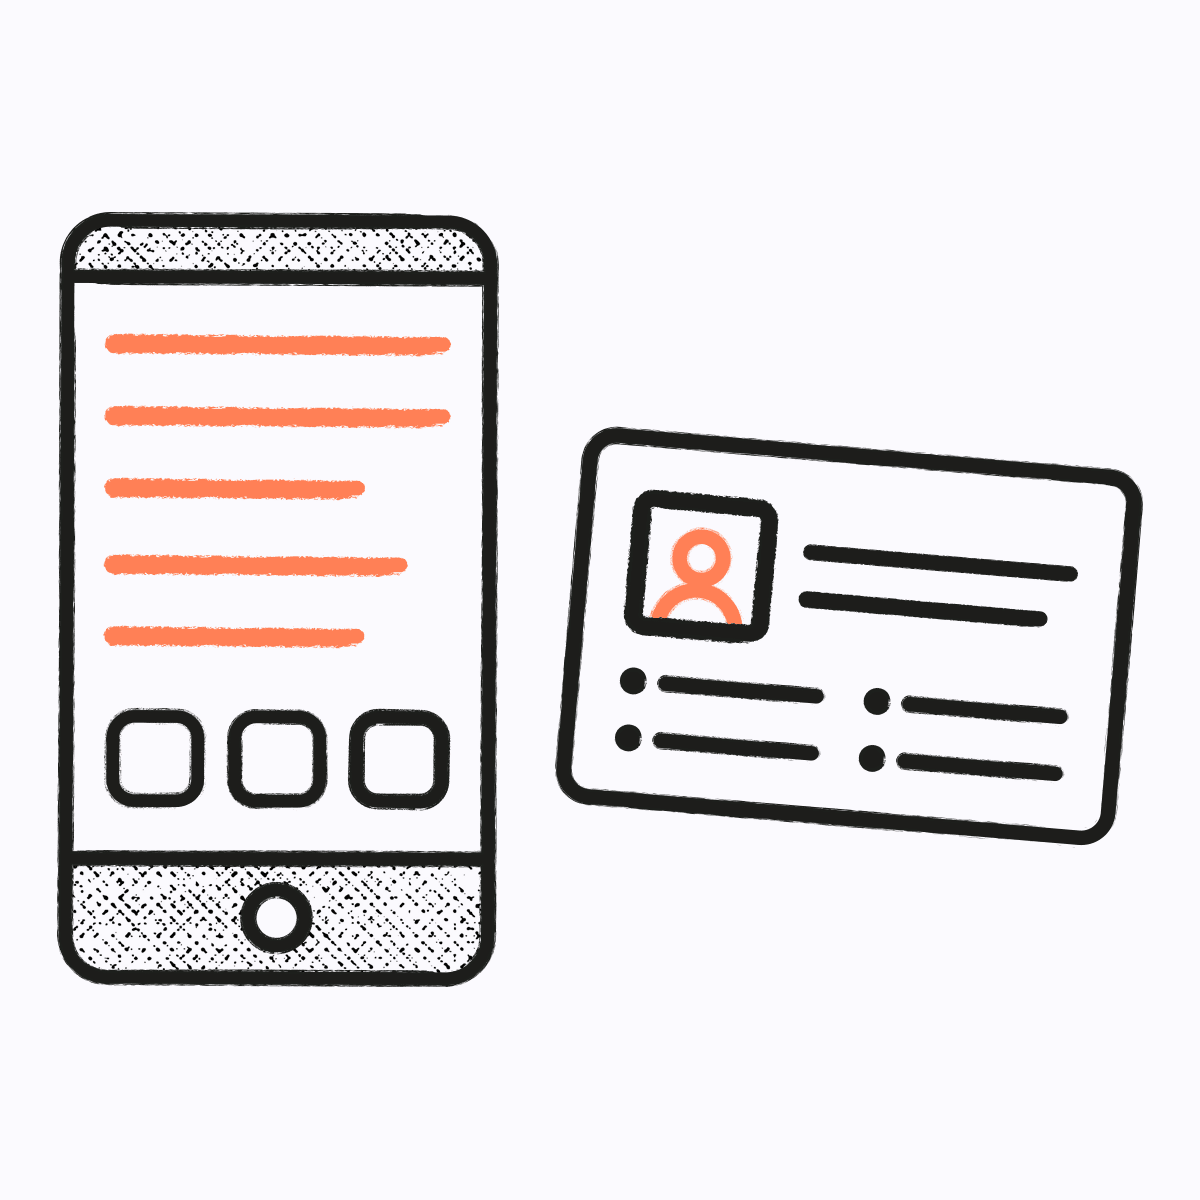 Illustration of mobile phone and identity card